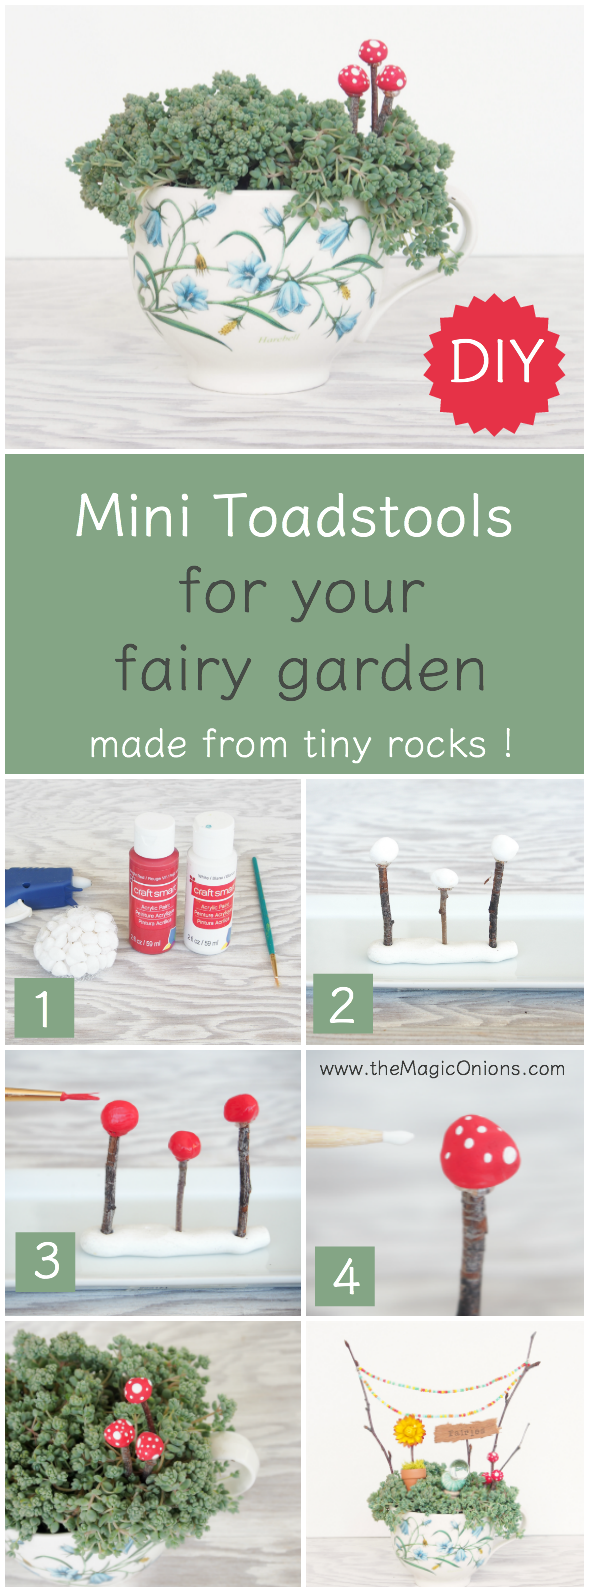 howto make toadstools for a fairy garden